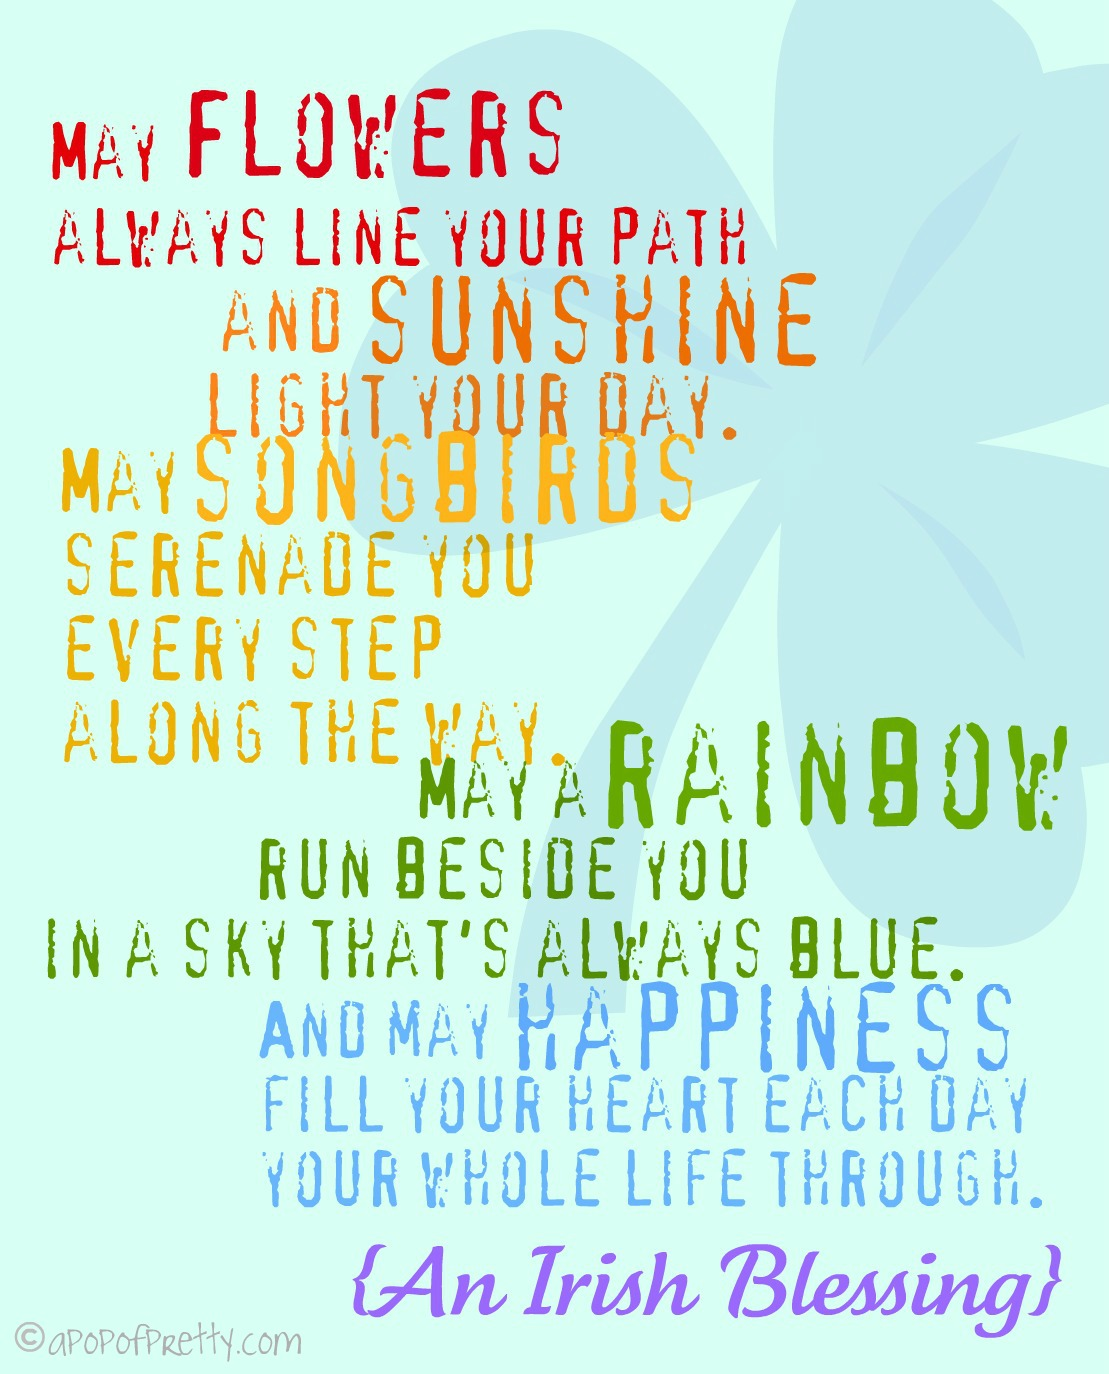 st patrick's day printable - May Flowers Always Line Your Path